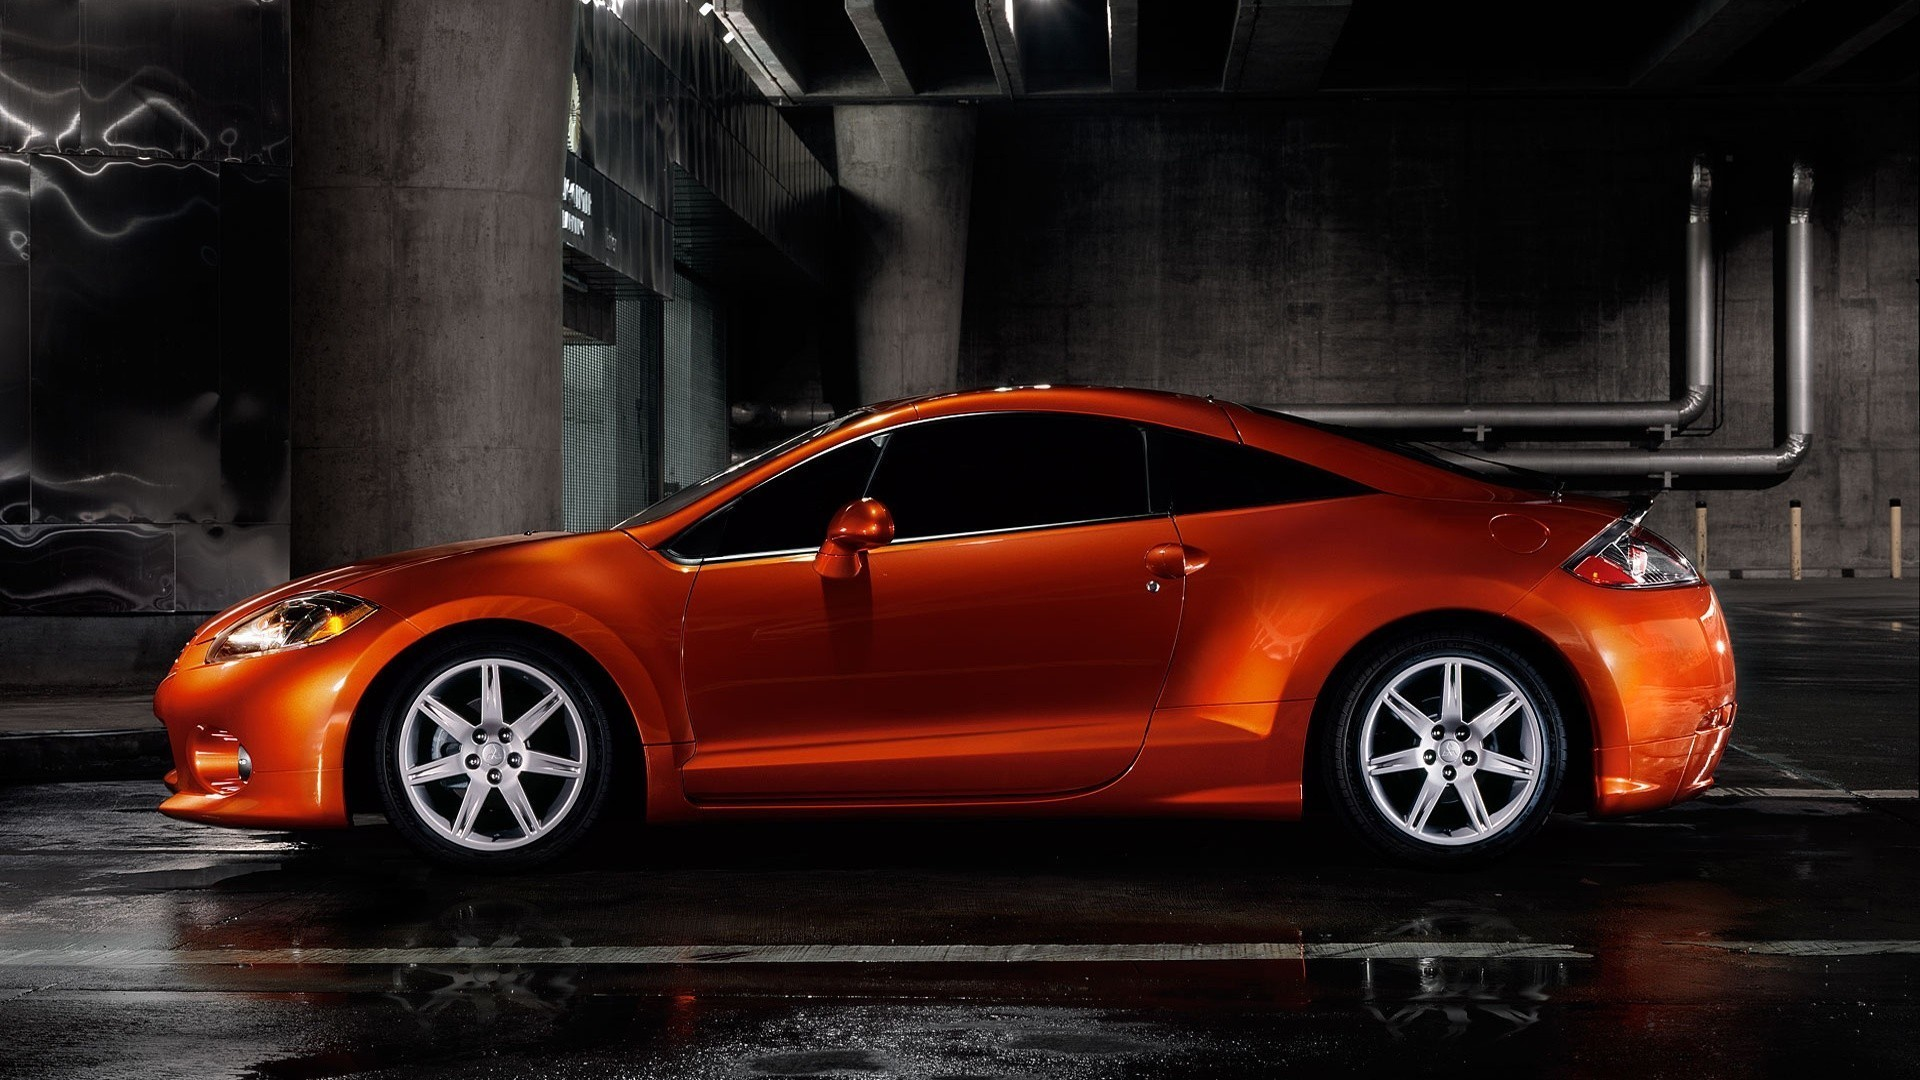 Awesome 1920x1080 Mitsubishi Eclipse Vehicles Wallpaper